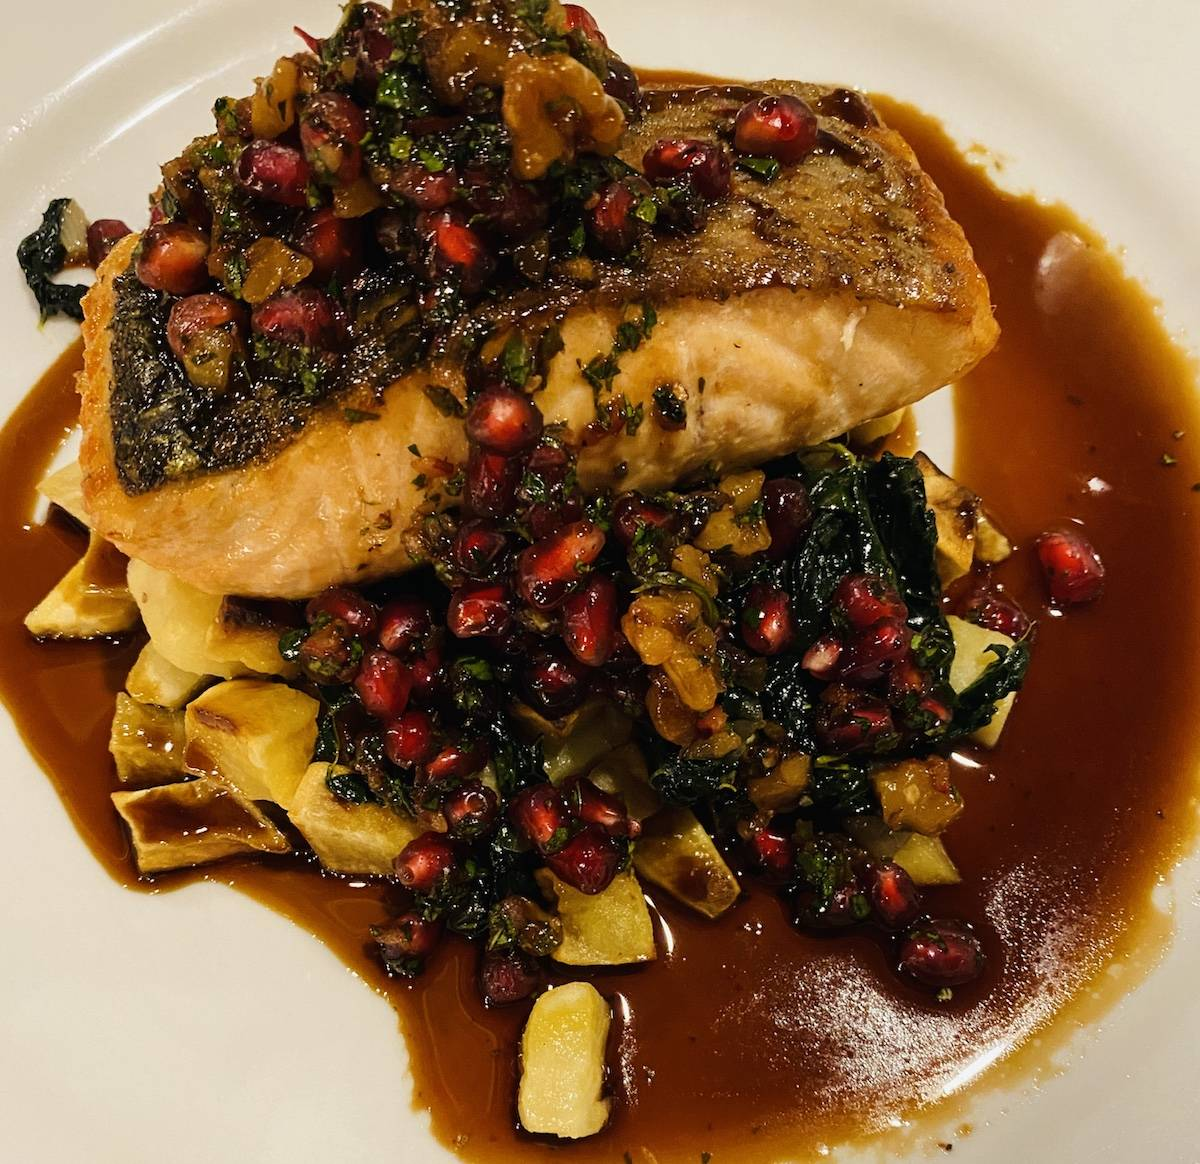 Wild Skuna Bay salmon with pomegranate and walnut salsa was tangy and tasty. (Julie L. Kessler/Special to S.F. Examiner)